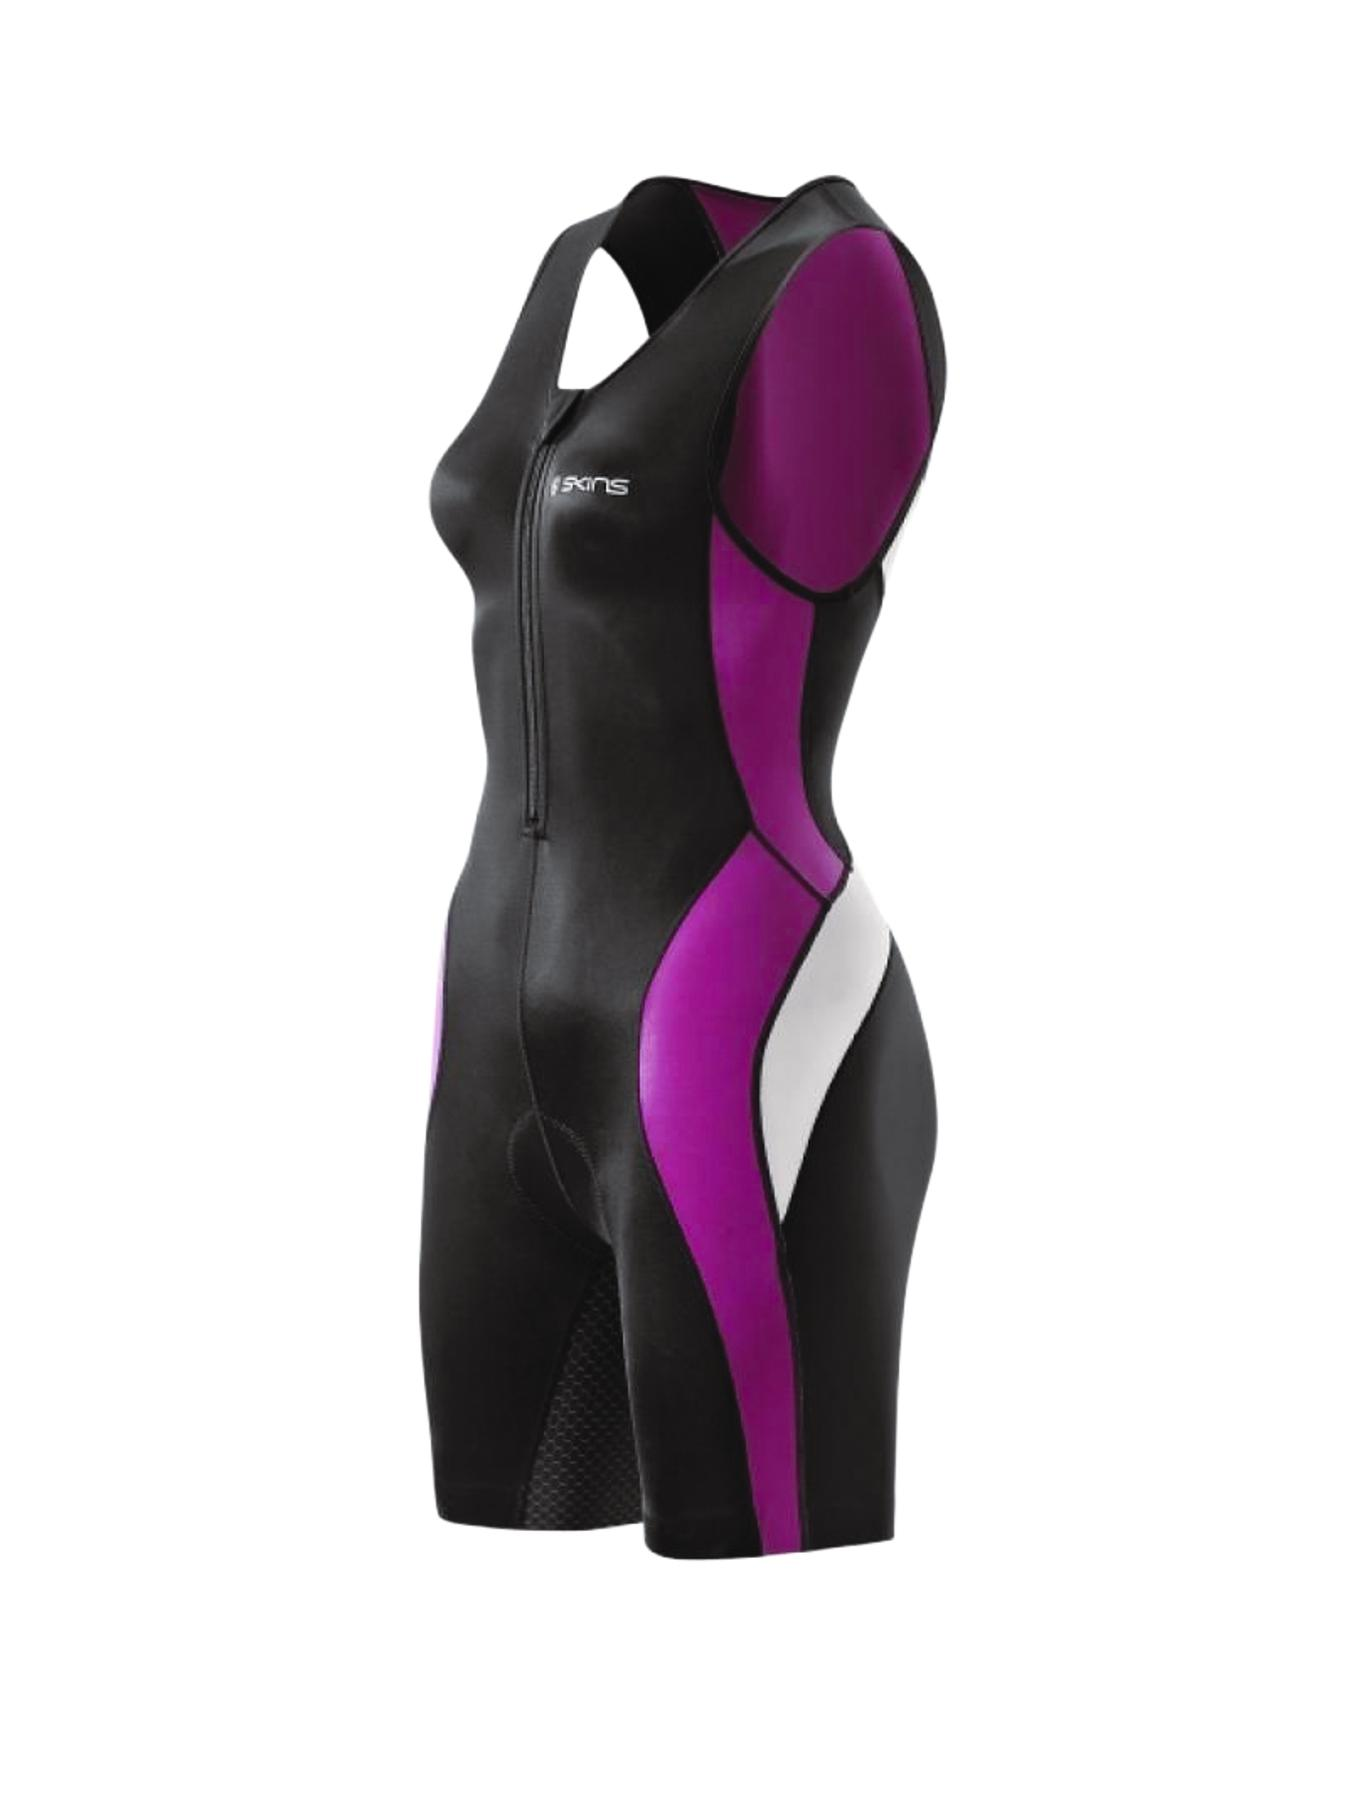 Skins Tri400 Compression Ladies Sleeveless Tri Suit with Front Zip - Black, Black